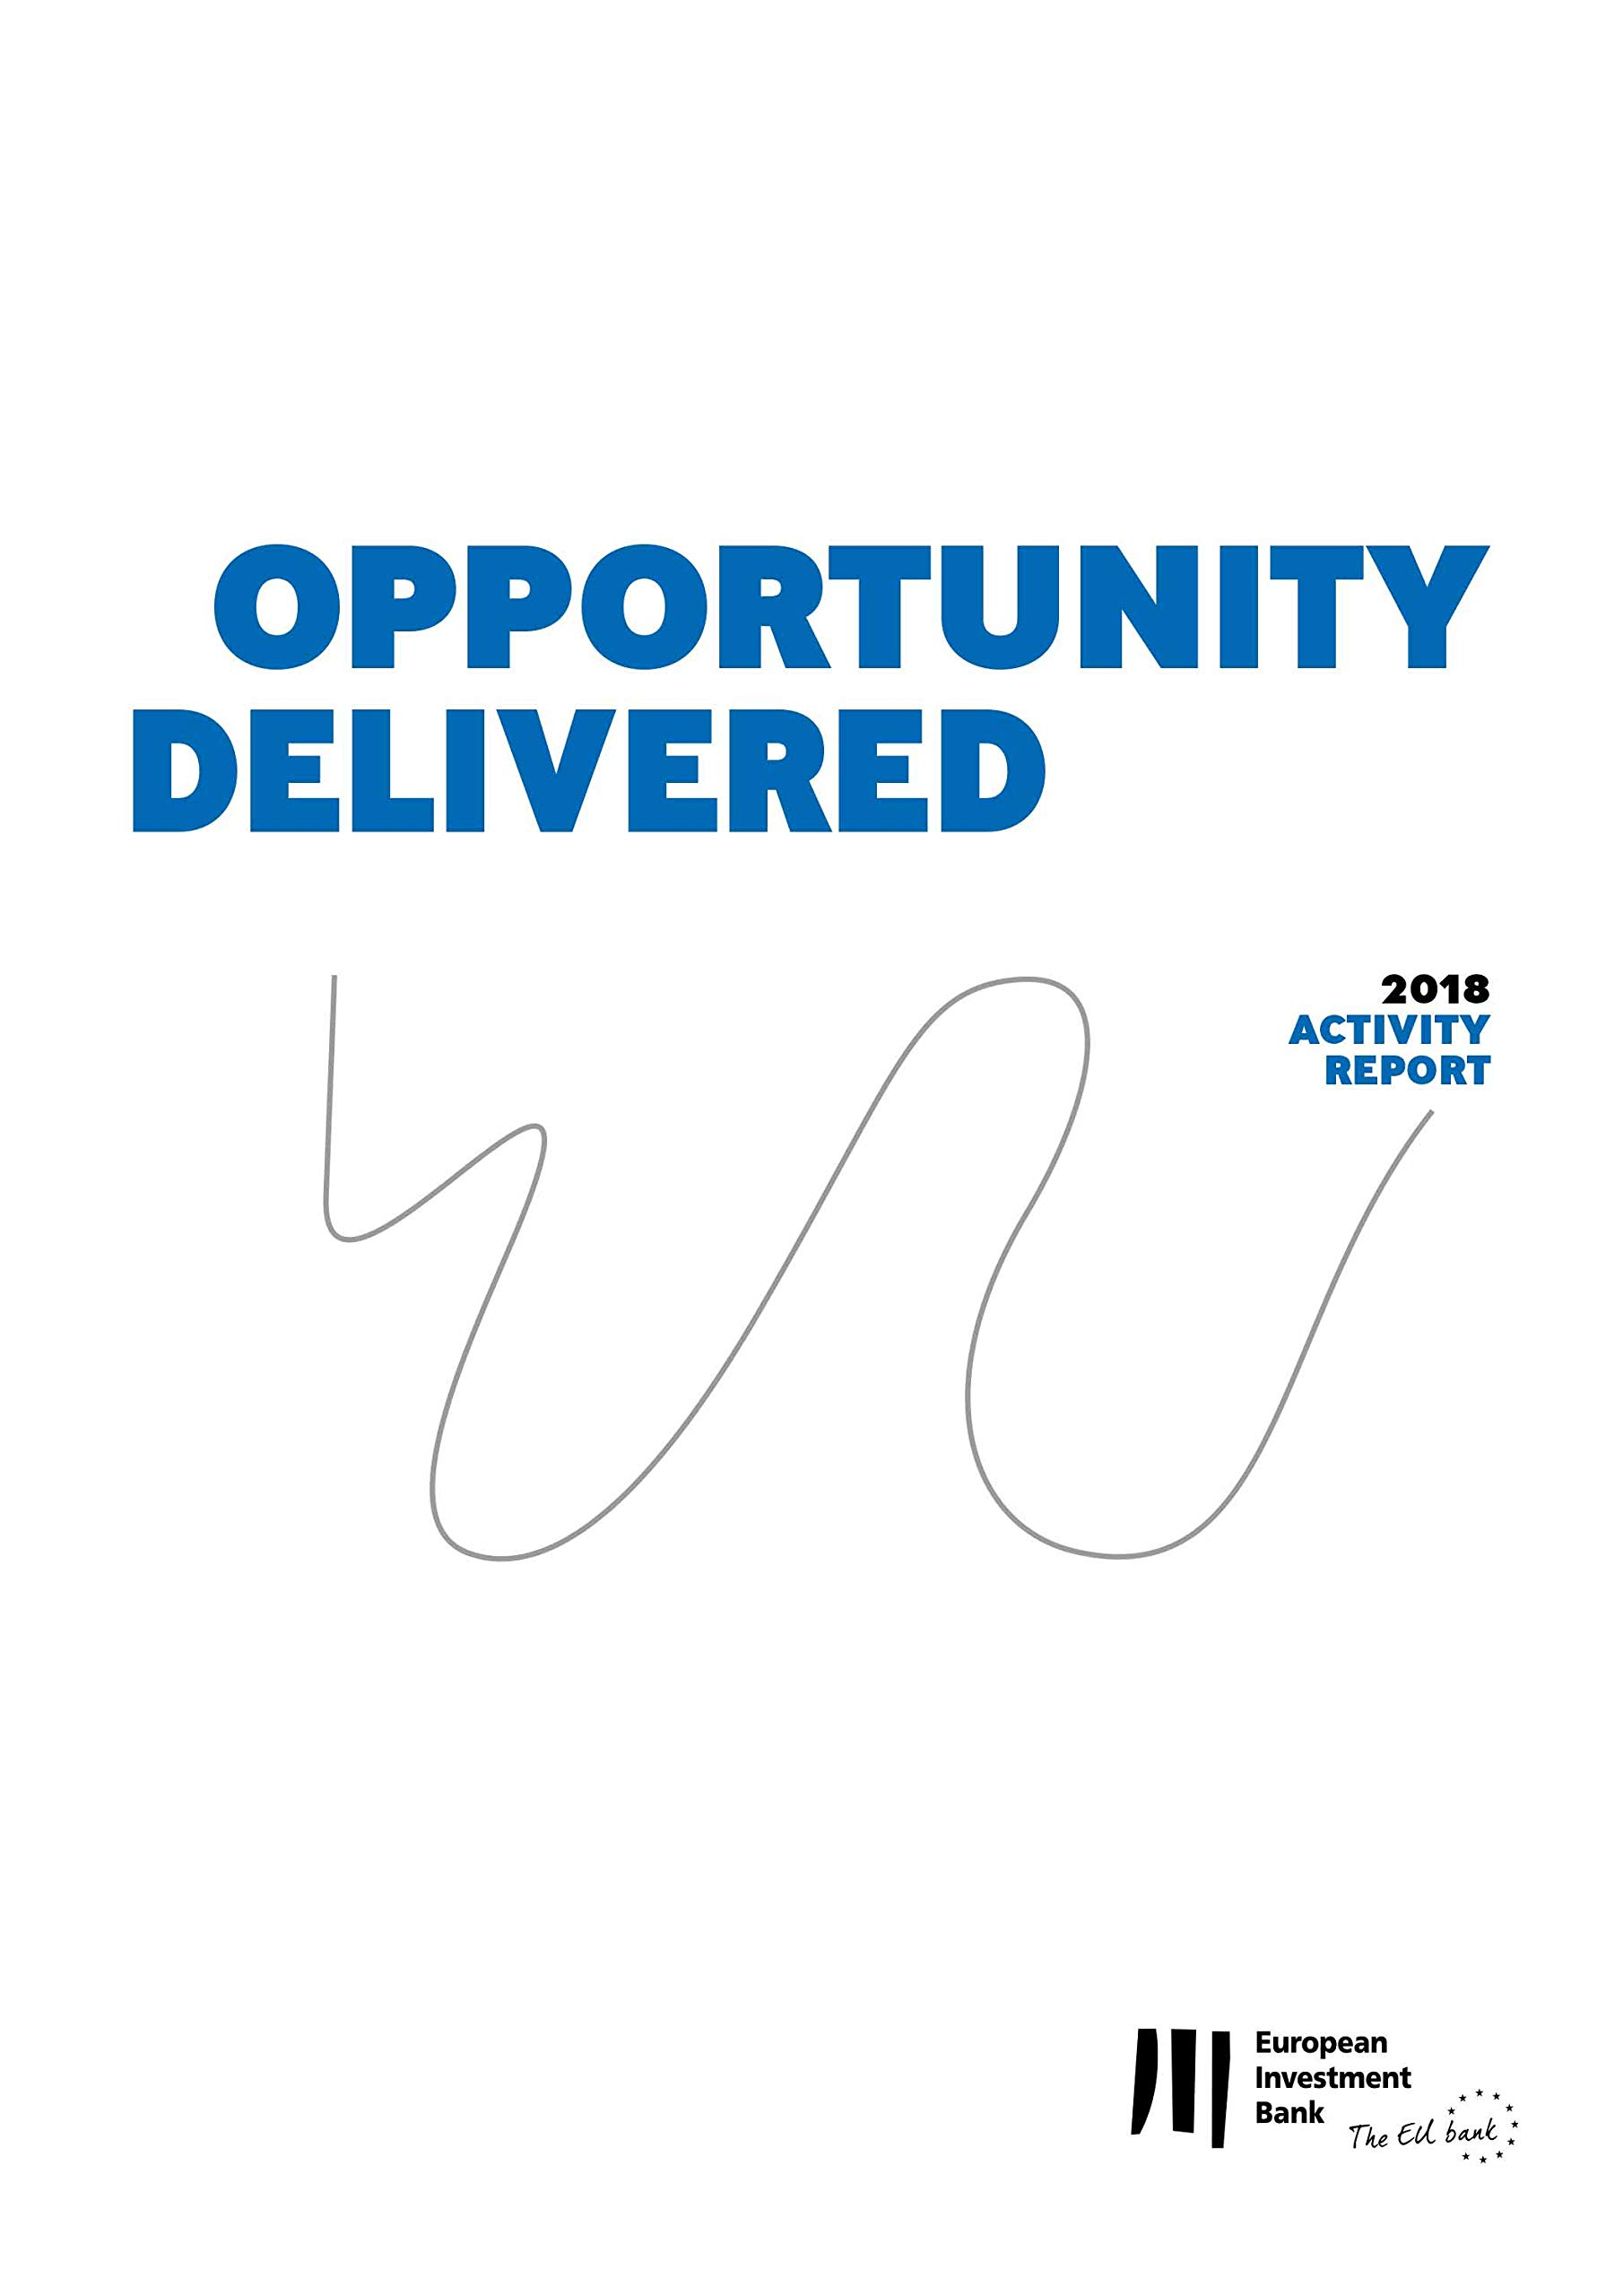 European Investment Bank Activity Report 2018: Opportunity delivered